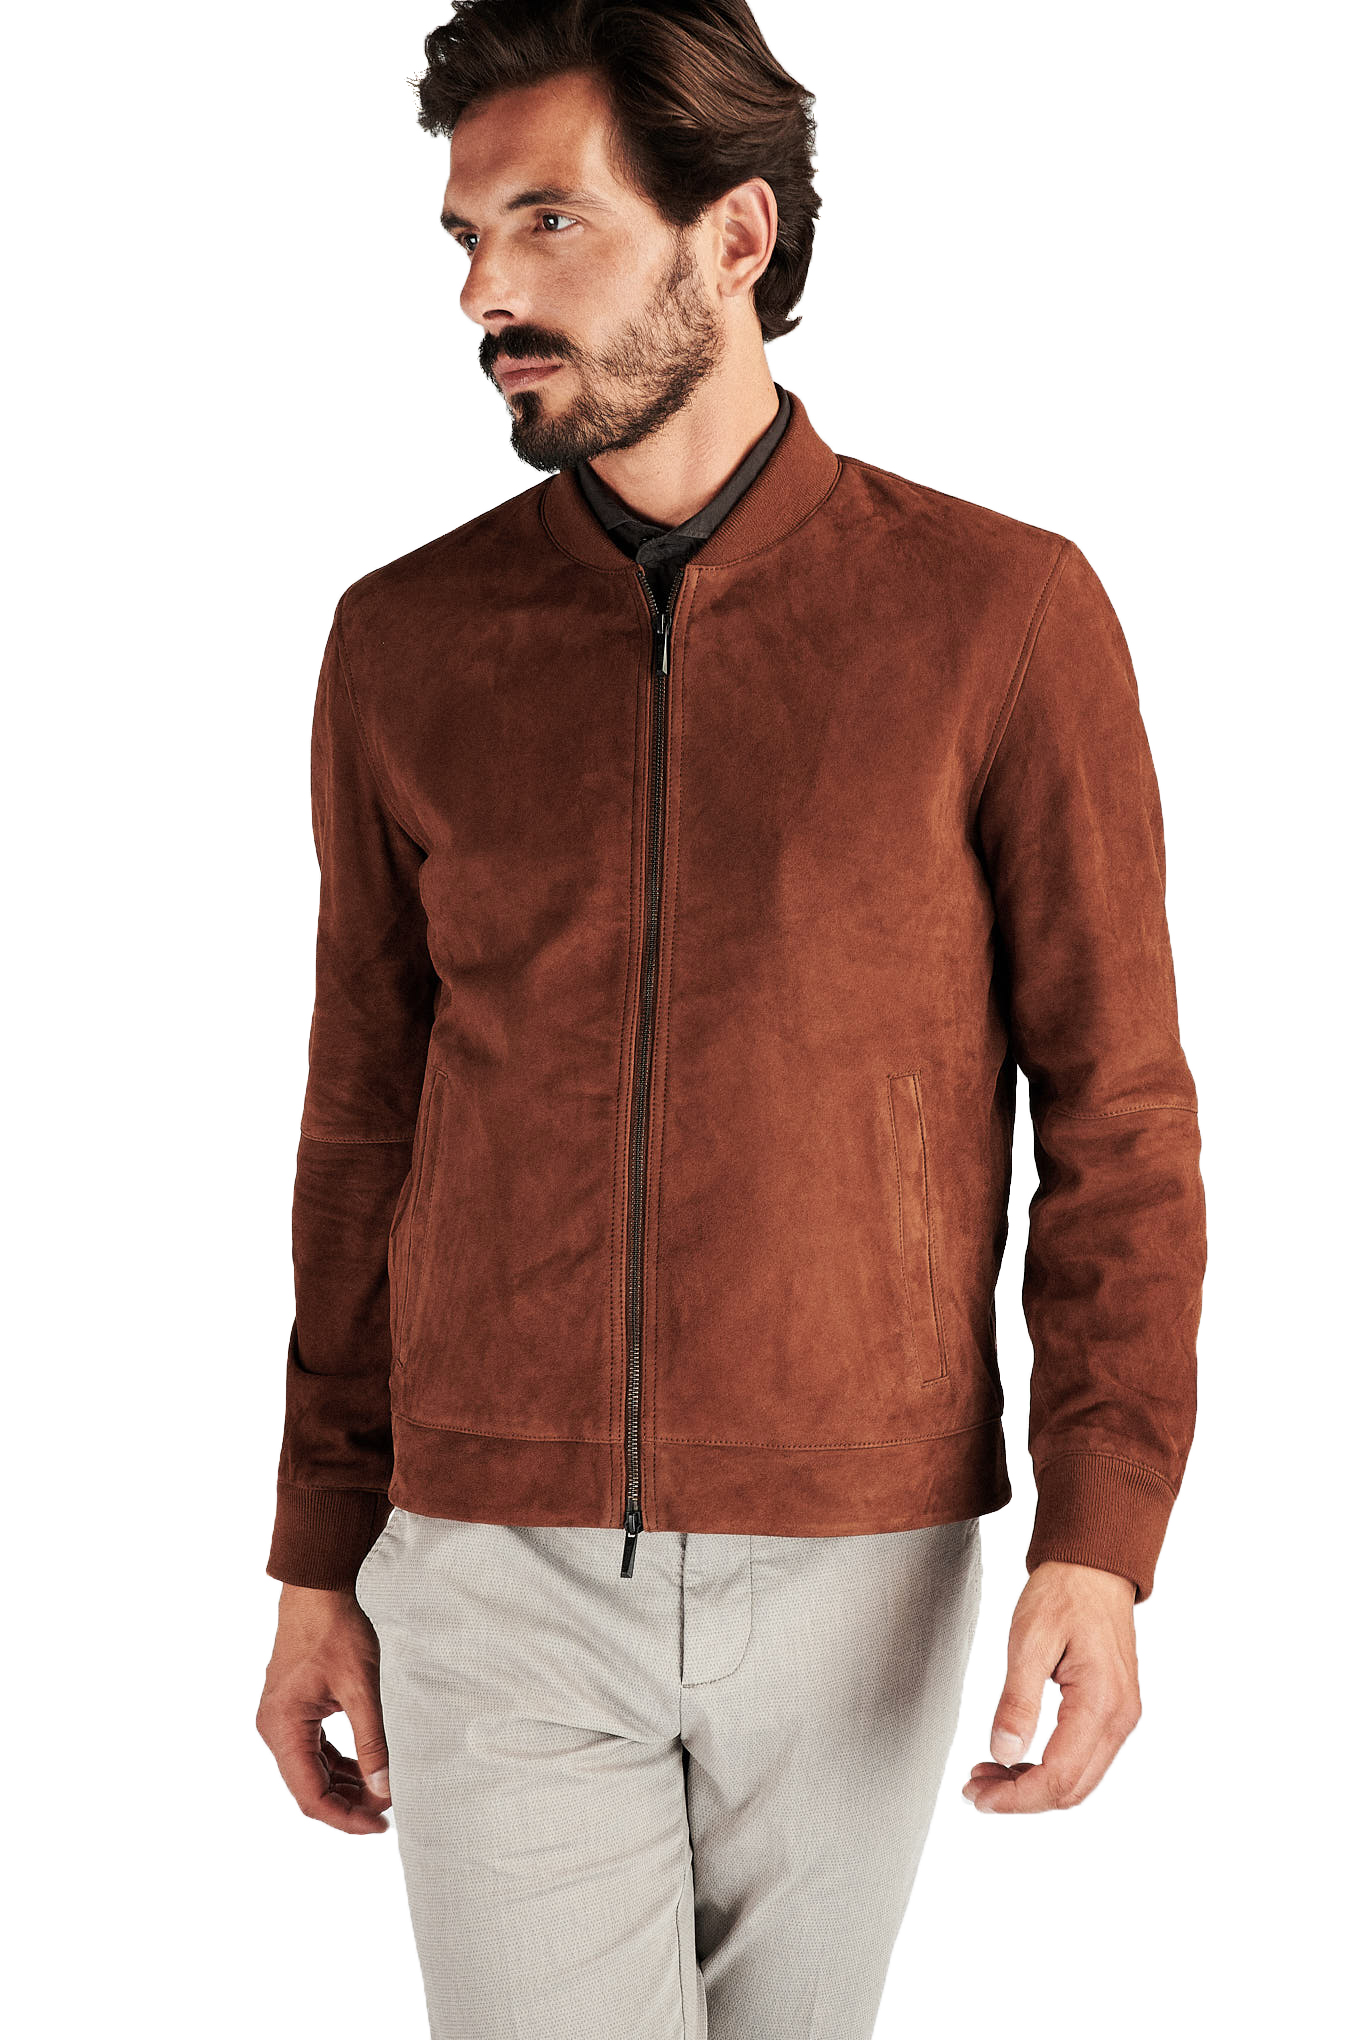 Leather Jacket Caramel Casual Man